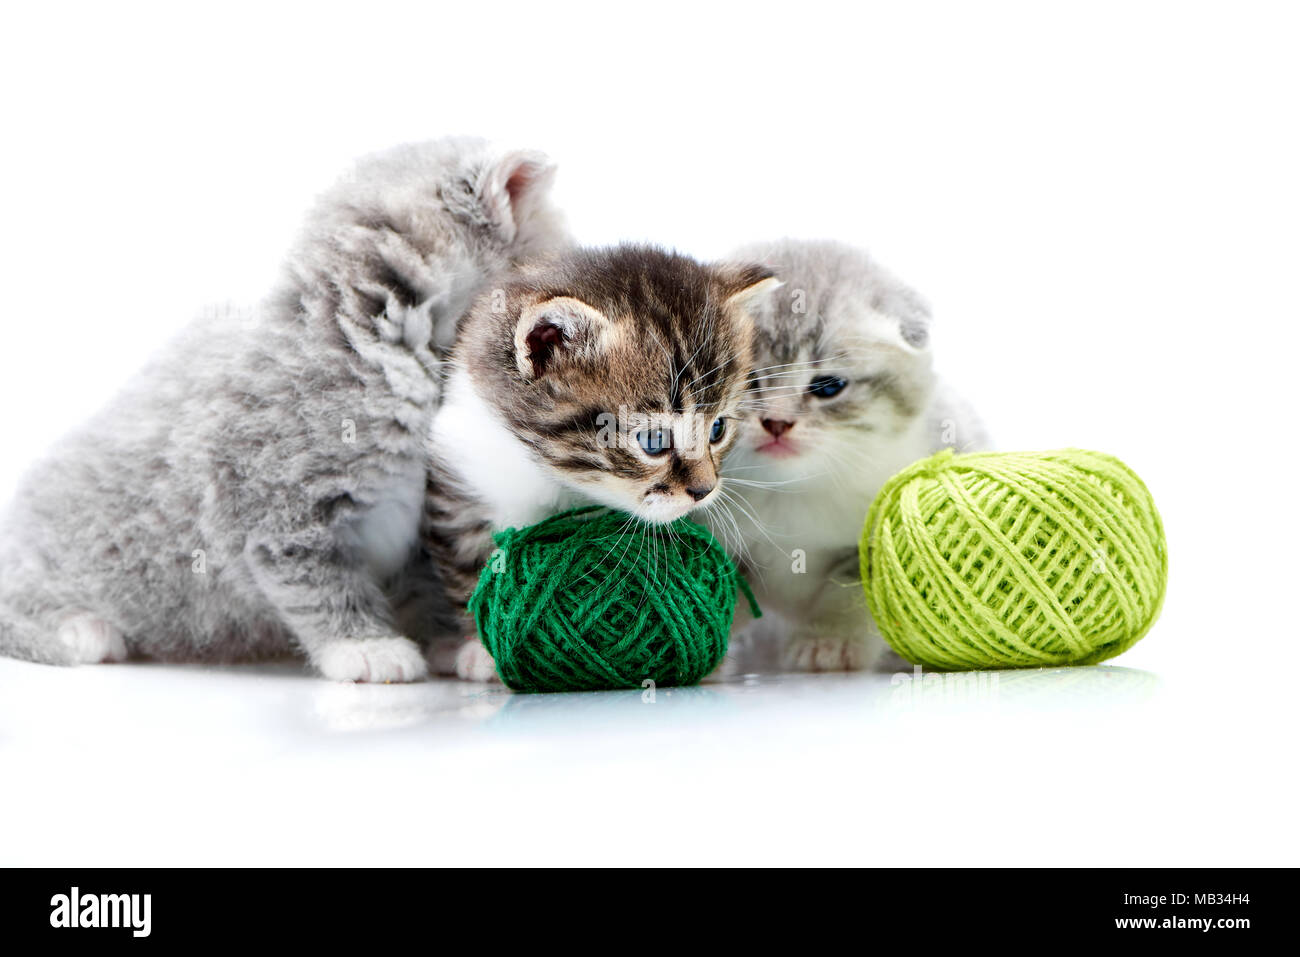 Grey fluffy cute kitties and one brown striped adorable kitten are playing with green yarn balls in white photo studio. Wool gray funny amusing playful curious funny cats happiness exploring - Stock Image